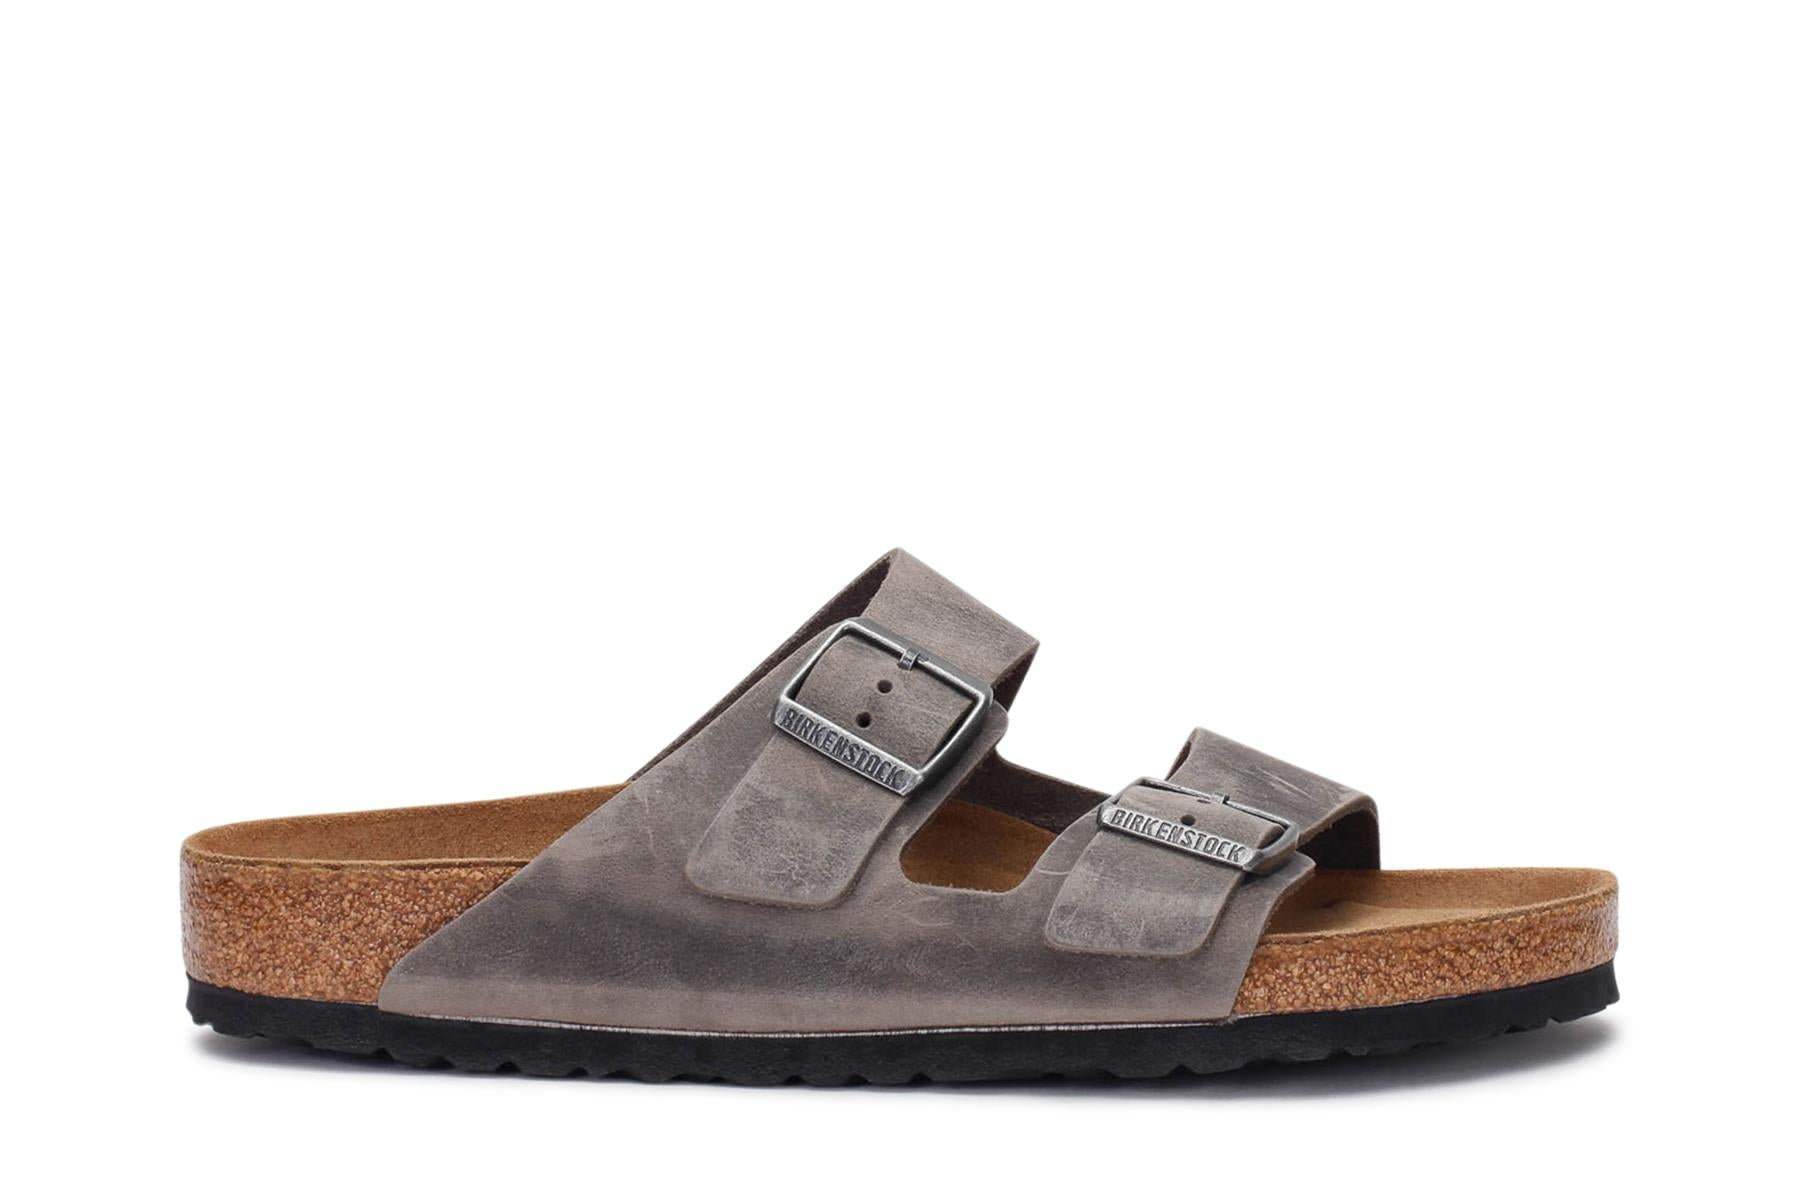 birkenstock-mens-slide-sandals-arizona-bs-iron-552801-main